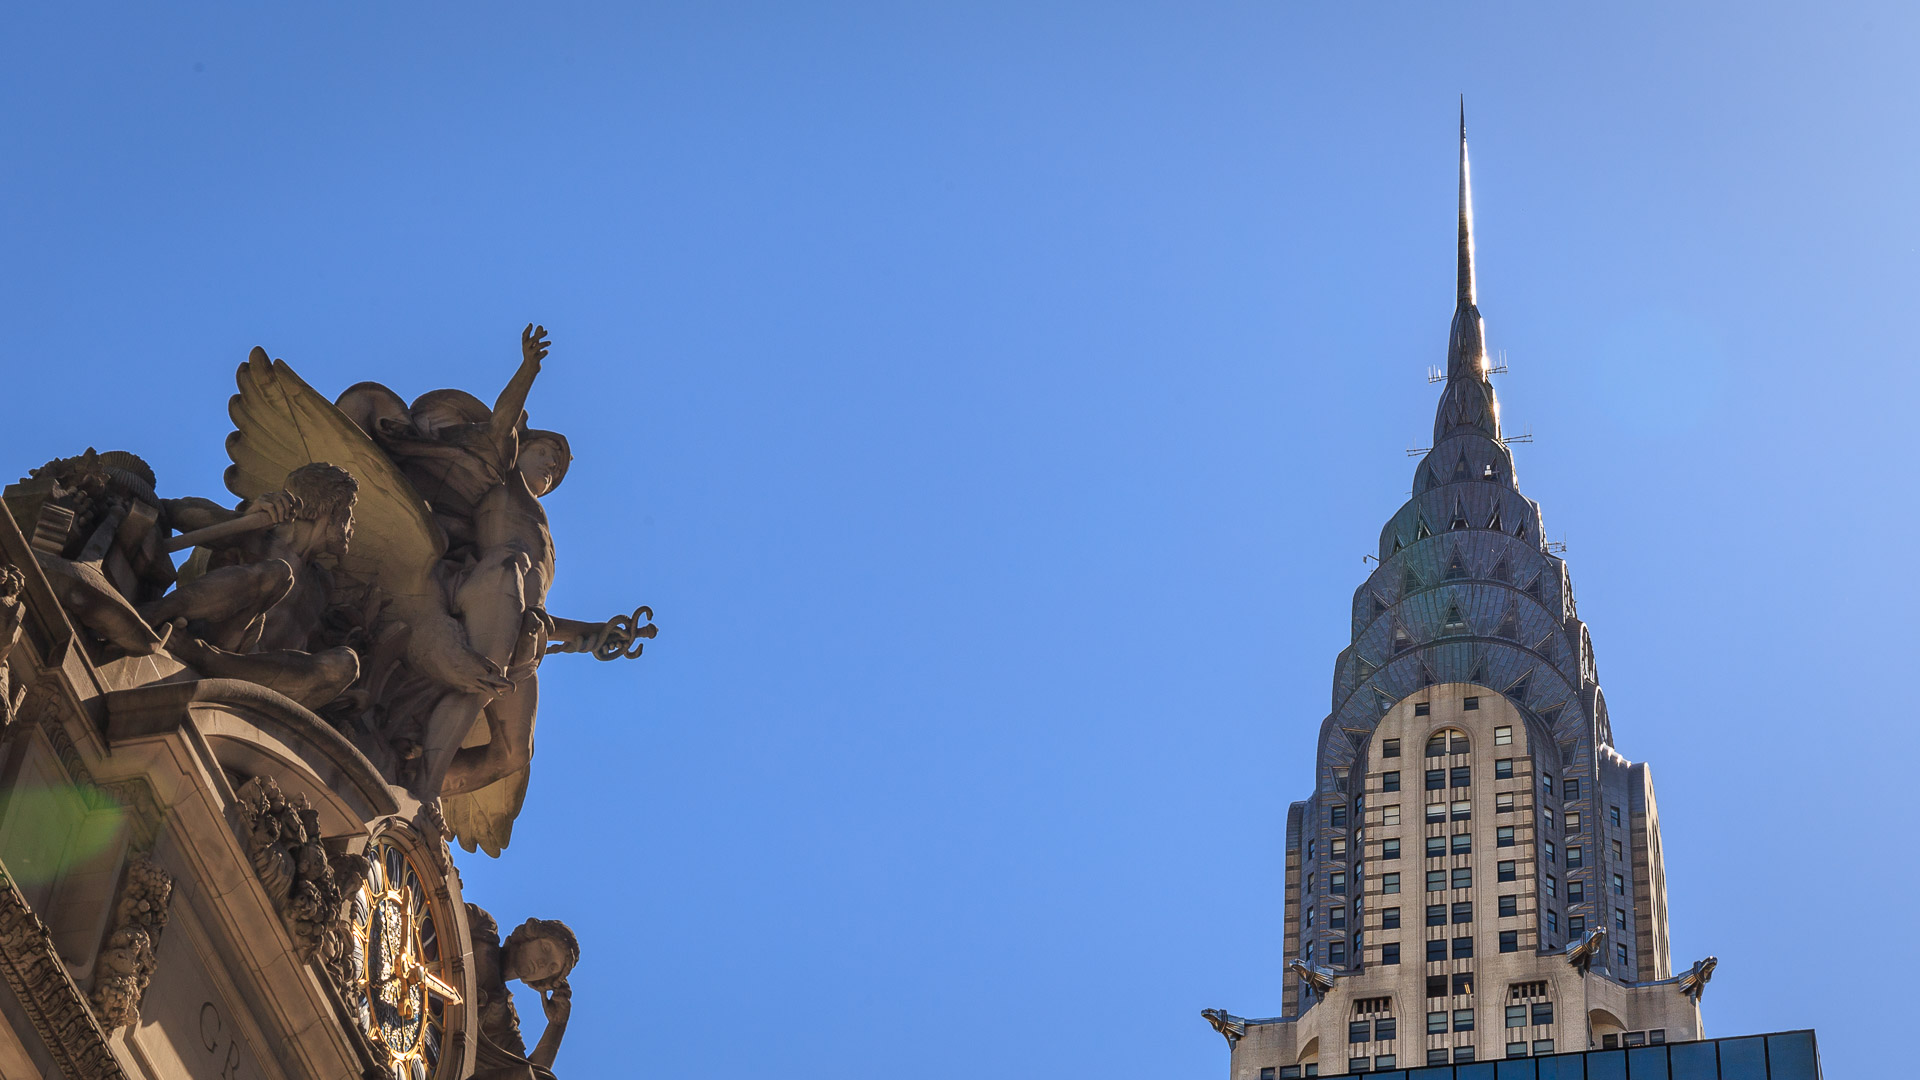 Chrysler Building und Statue des Great Central Terminal